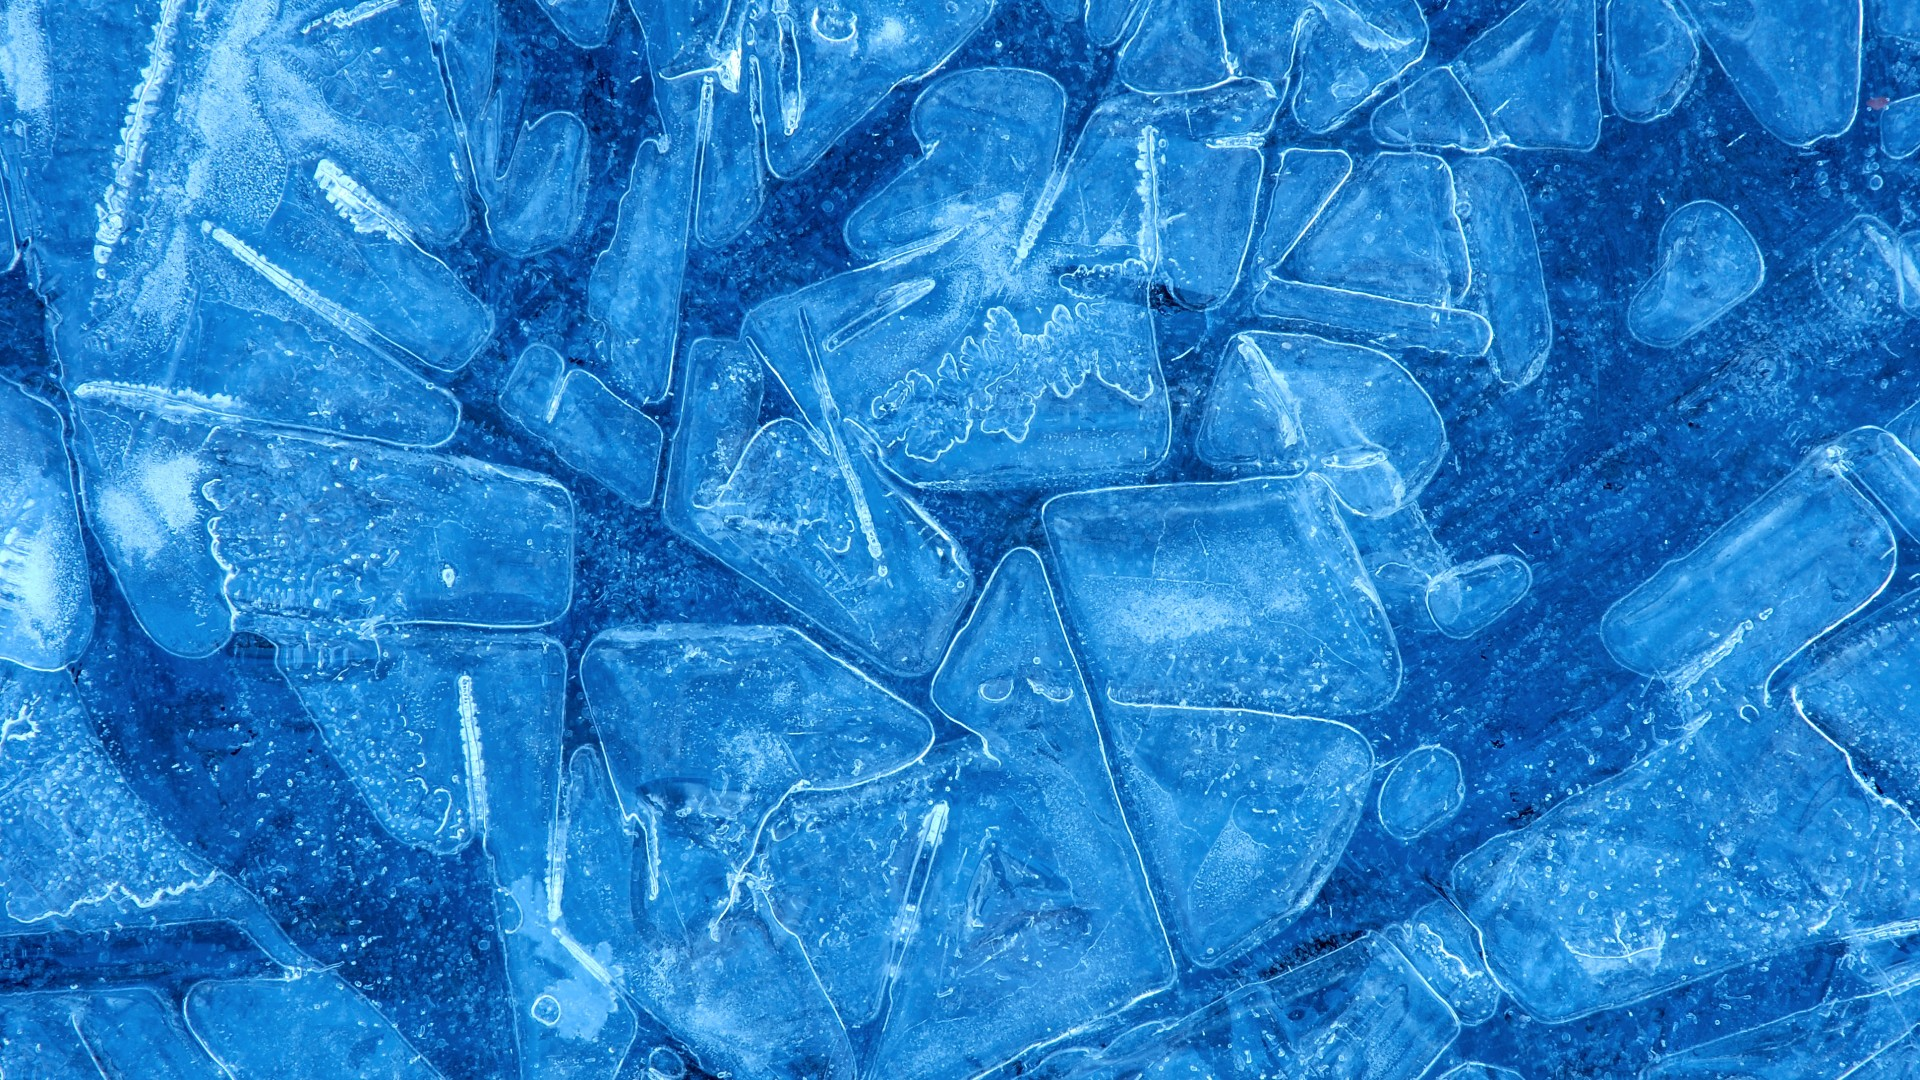 ice, 4k, 5k wallpaper, pattern, blue, background (horizontal)